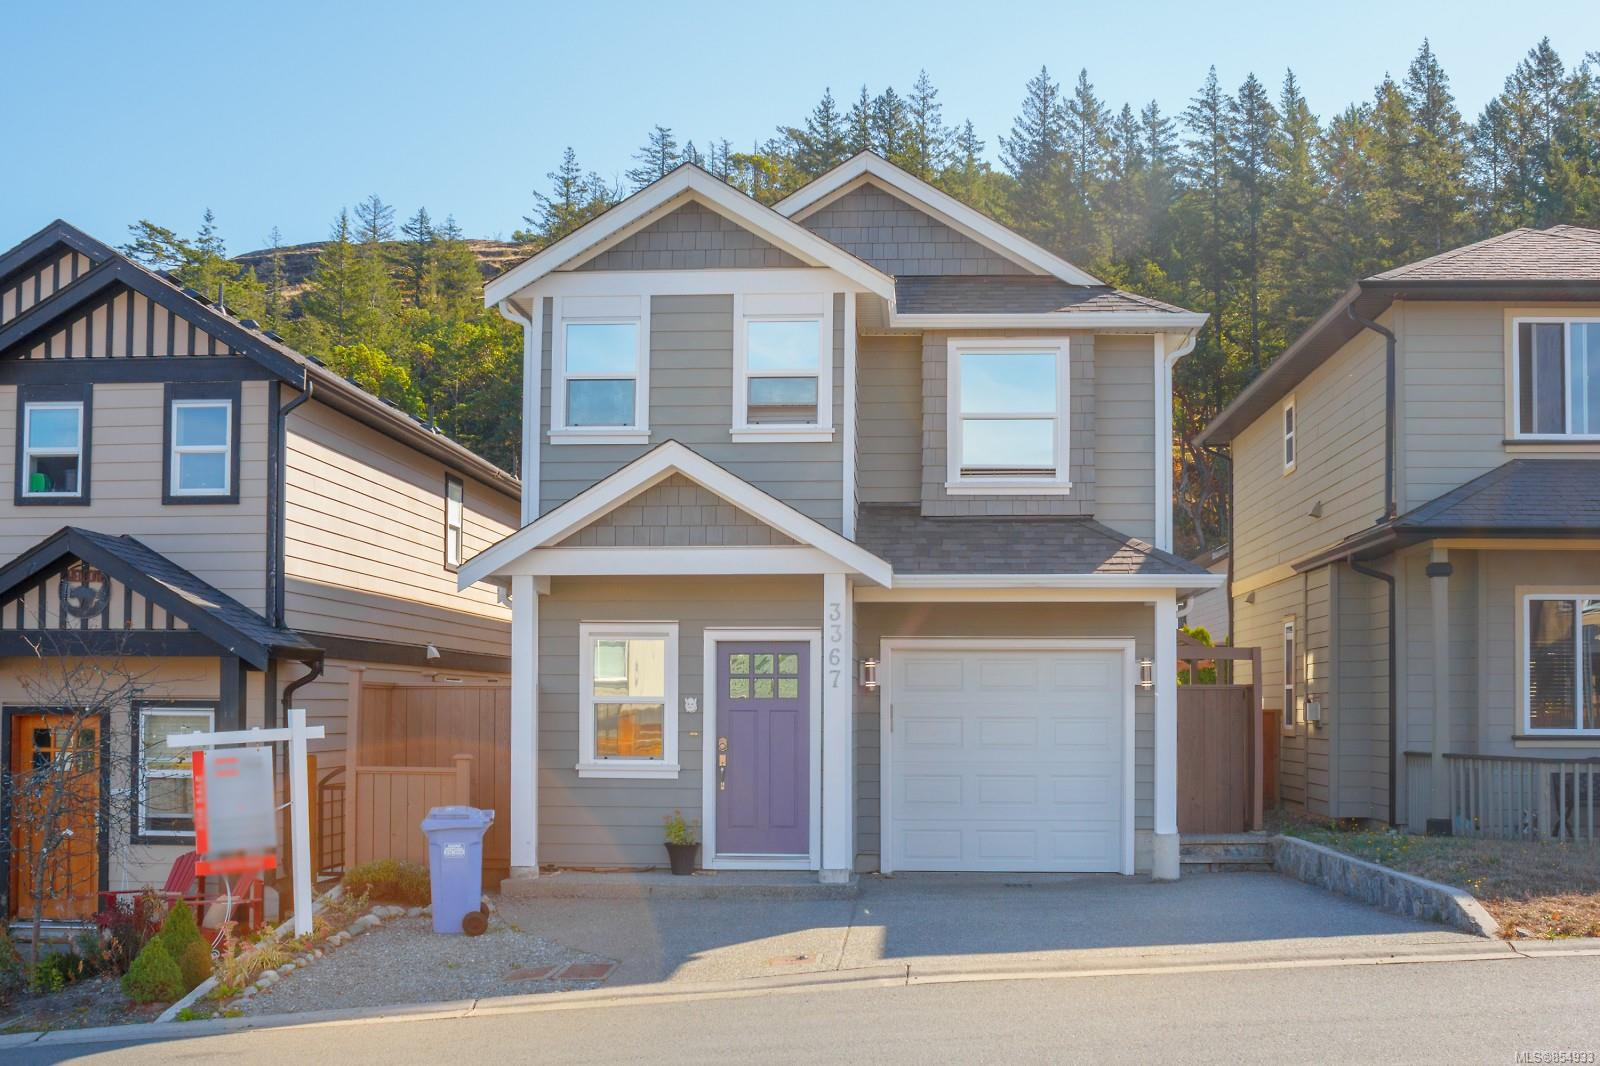 Main Photo: 3367 Turnstone Dr in : La Happy Valley House for sale (Langford)  : MLS®# 854933